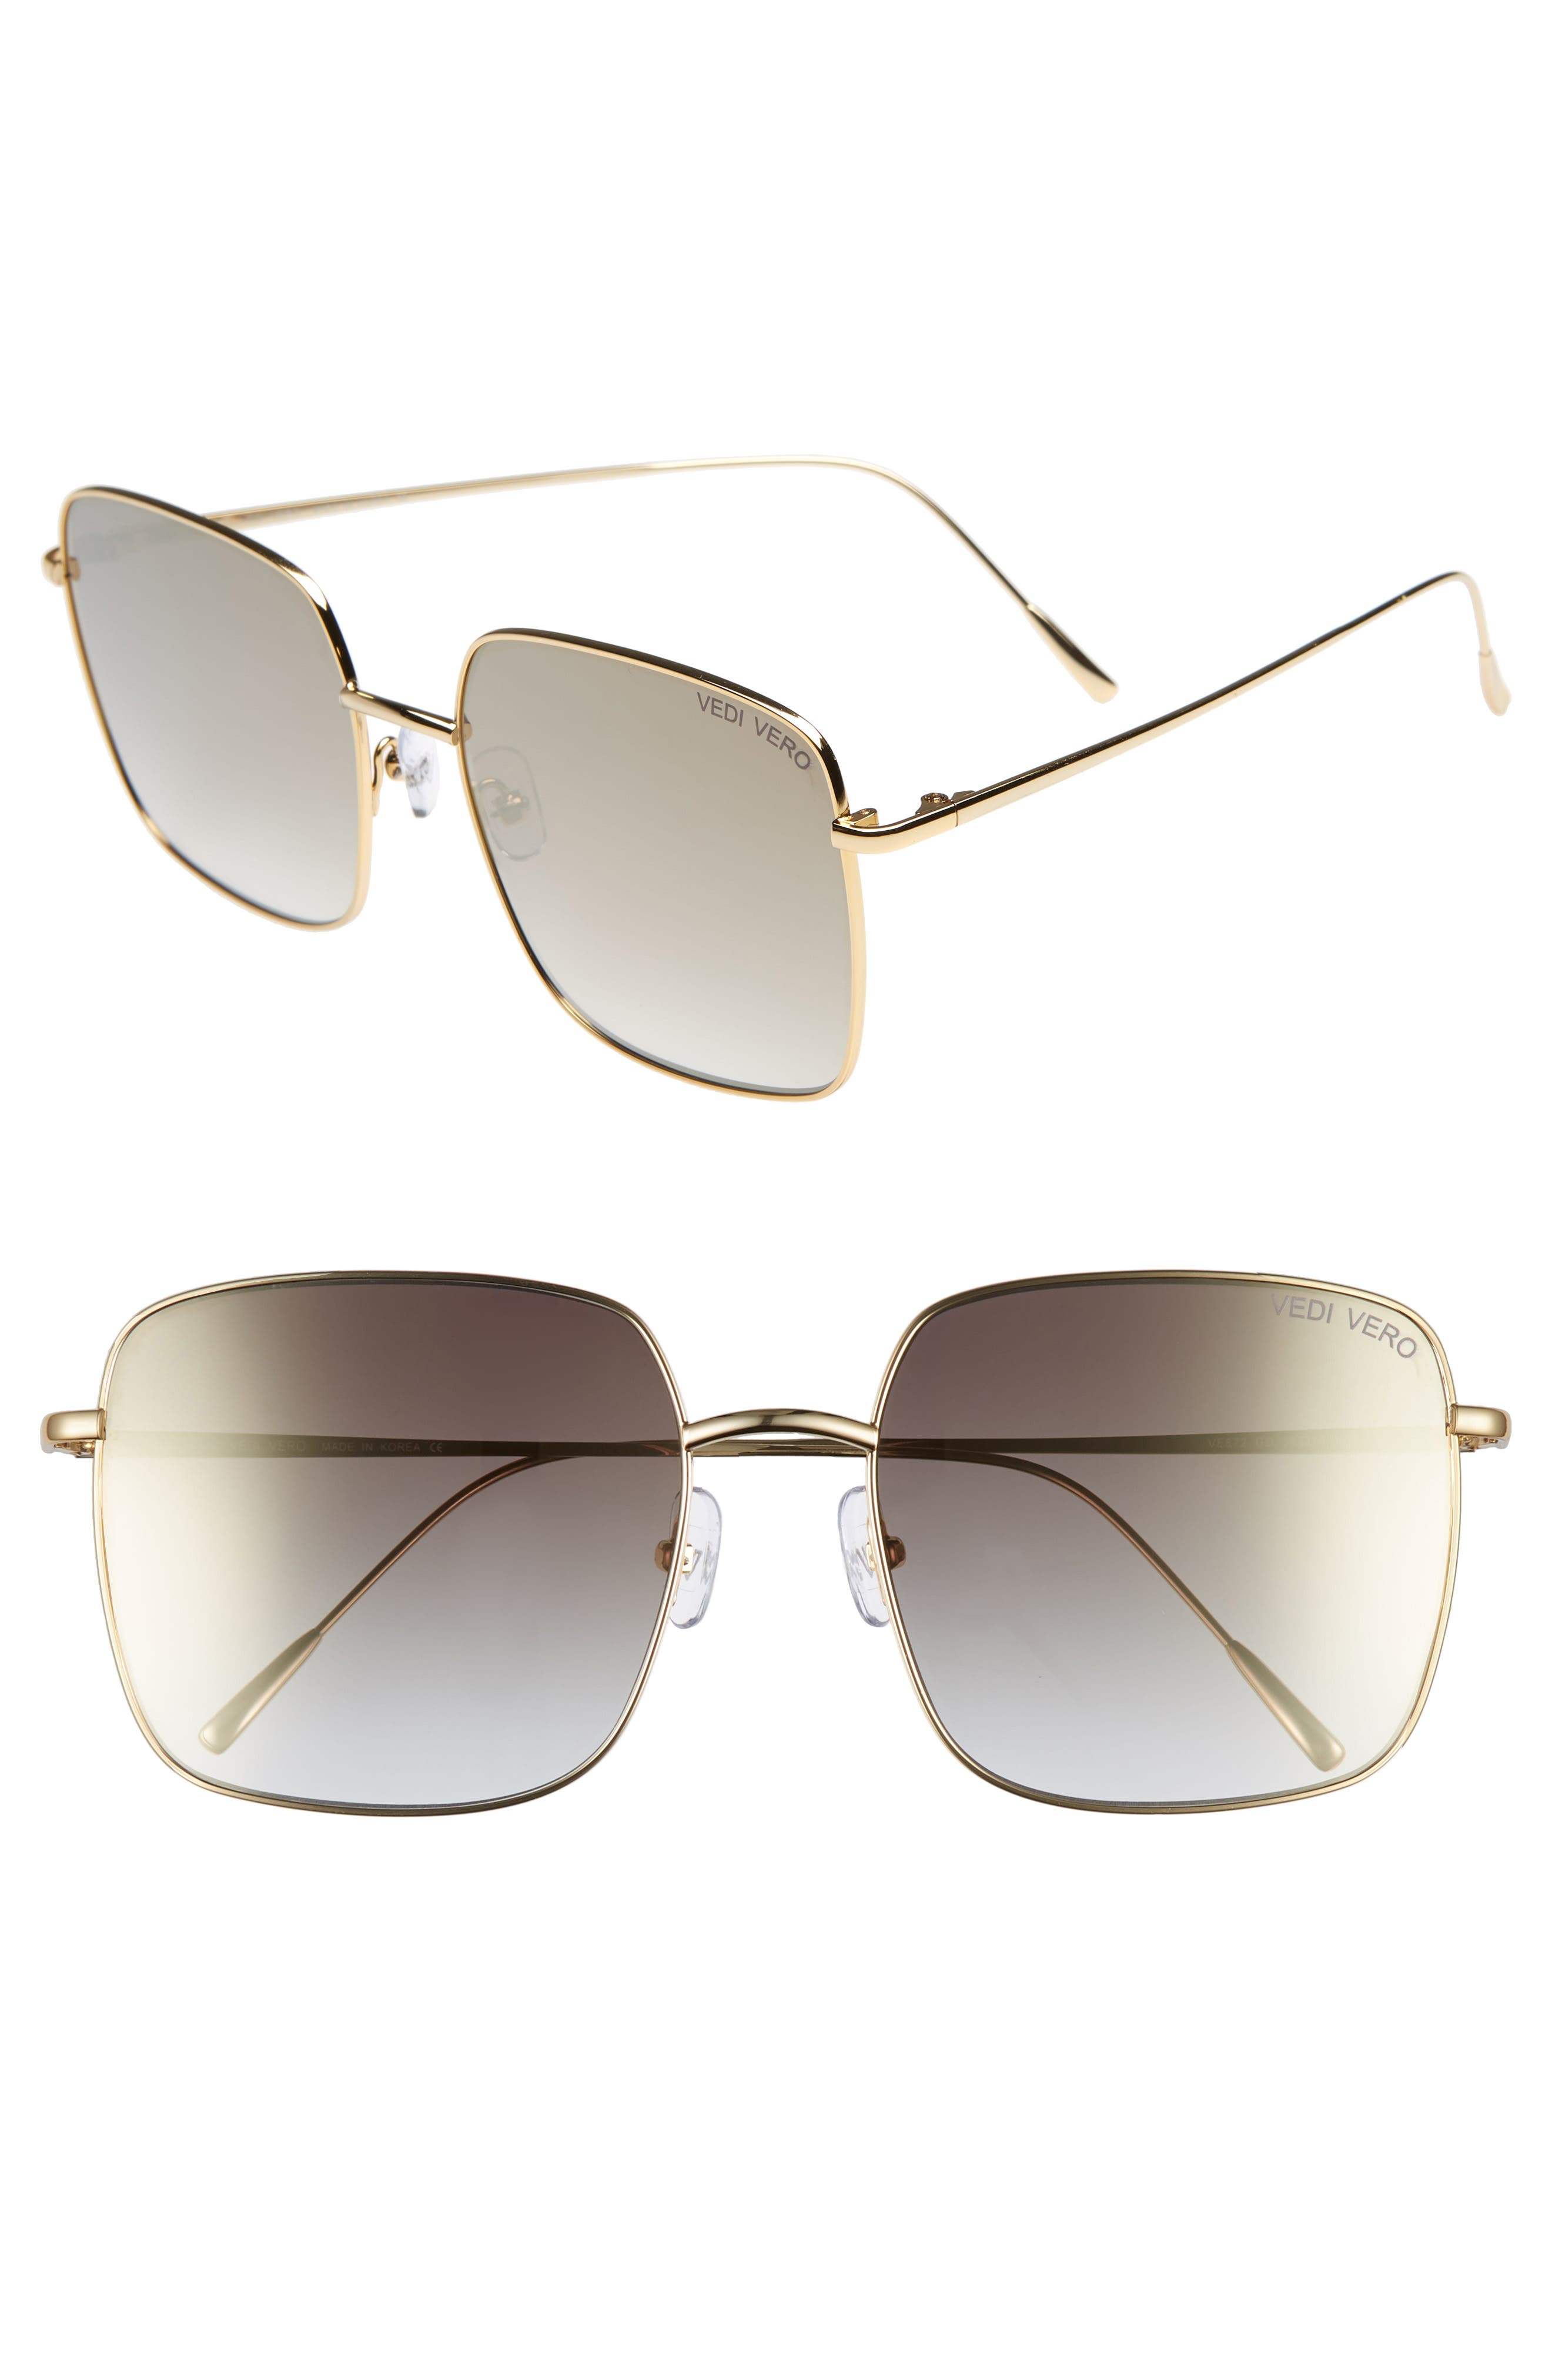 VEDI VERO 58Mm Square Sunglasses - Shiny Gold